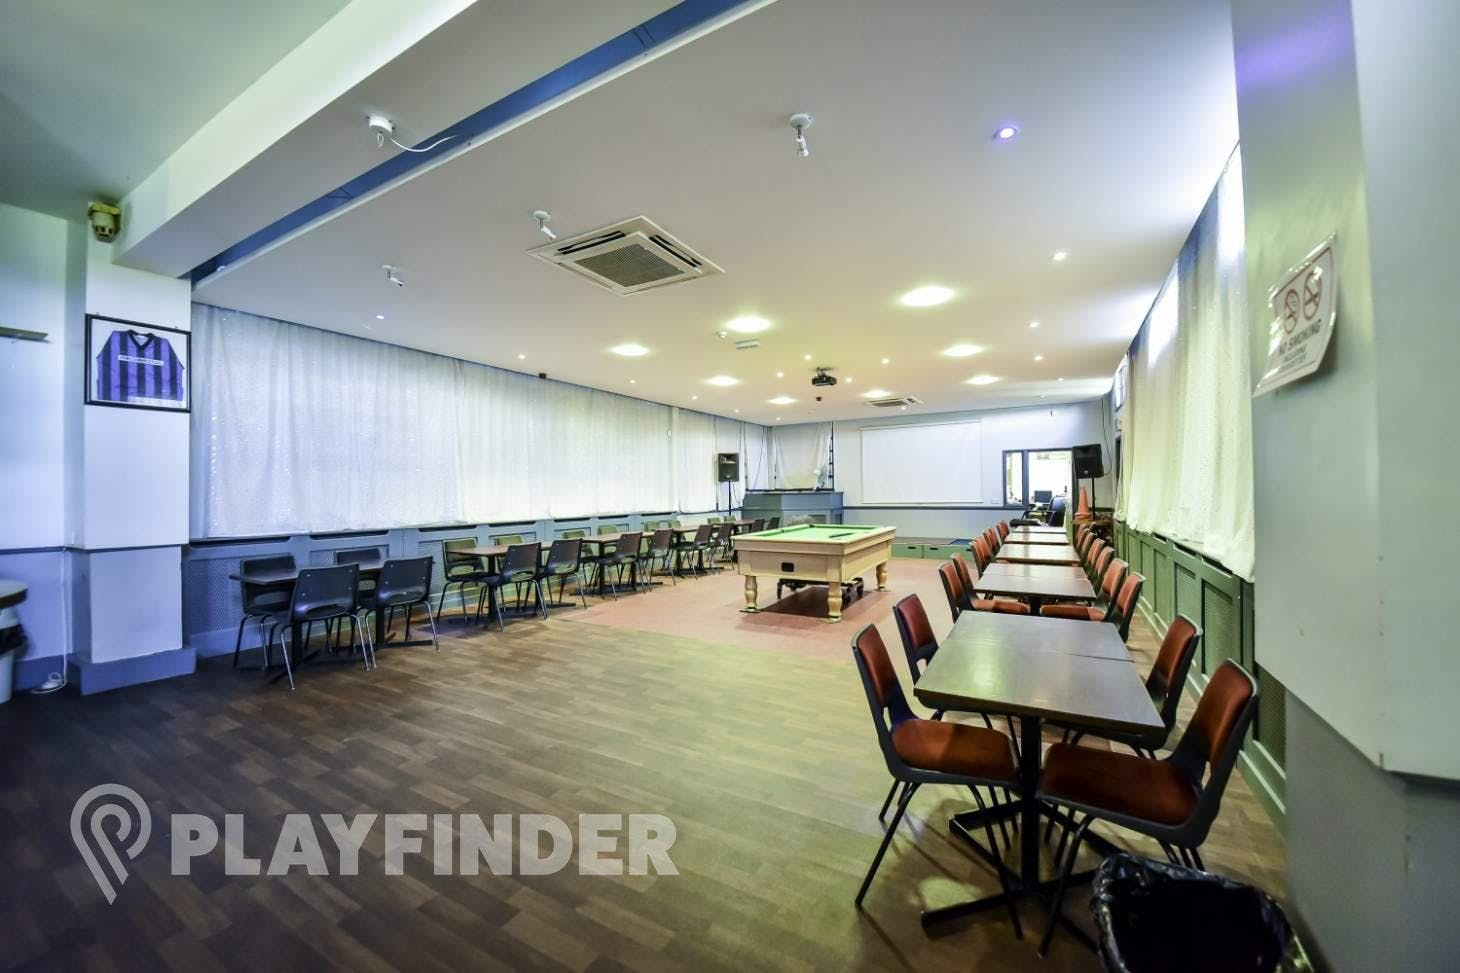 Long Lane JFC Meeting room space hire